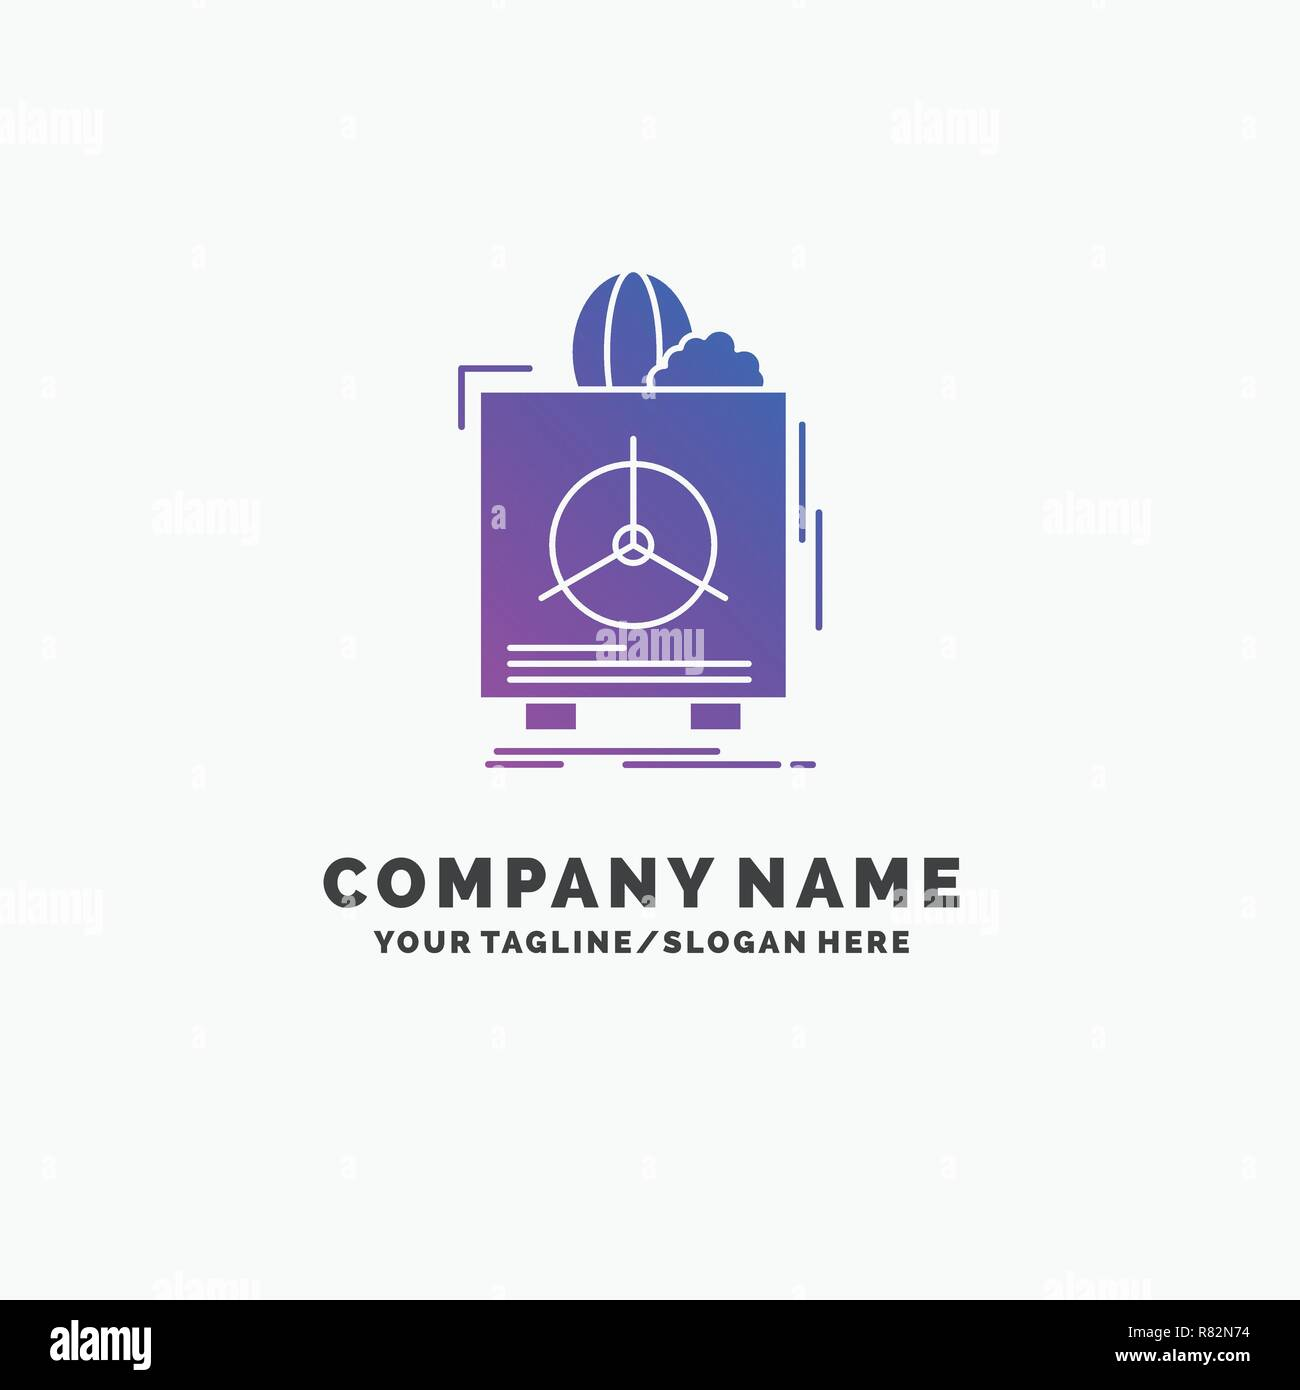 insurance, Fragile, product, warranty, health Purple Business Logo Template. Place for Tagline. - Stock Vector